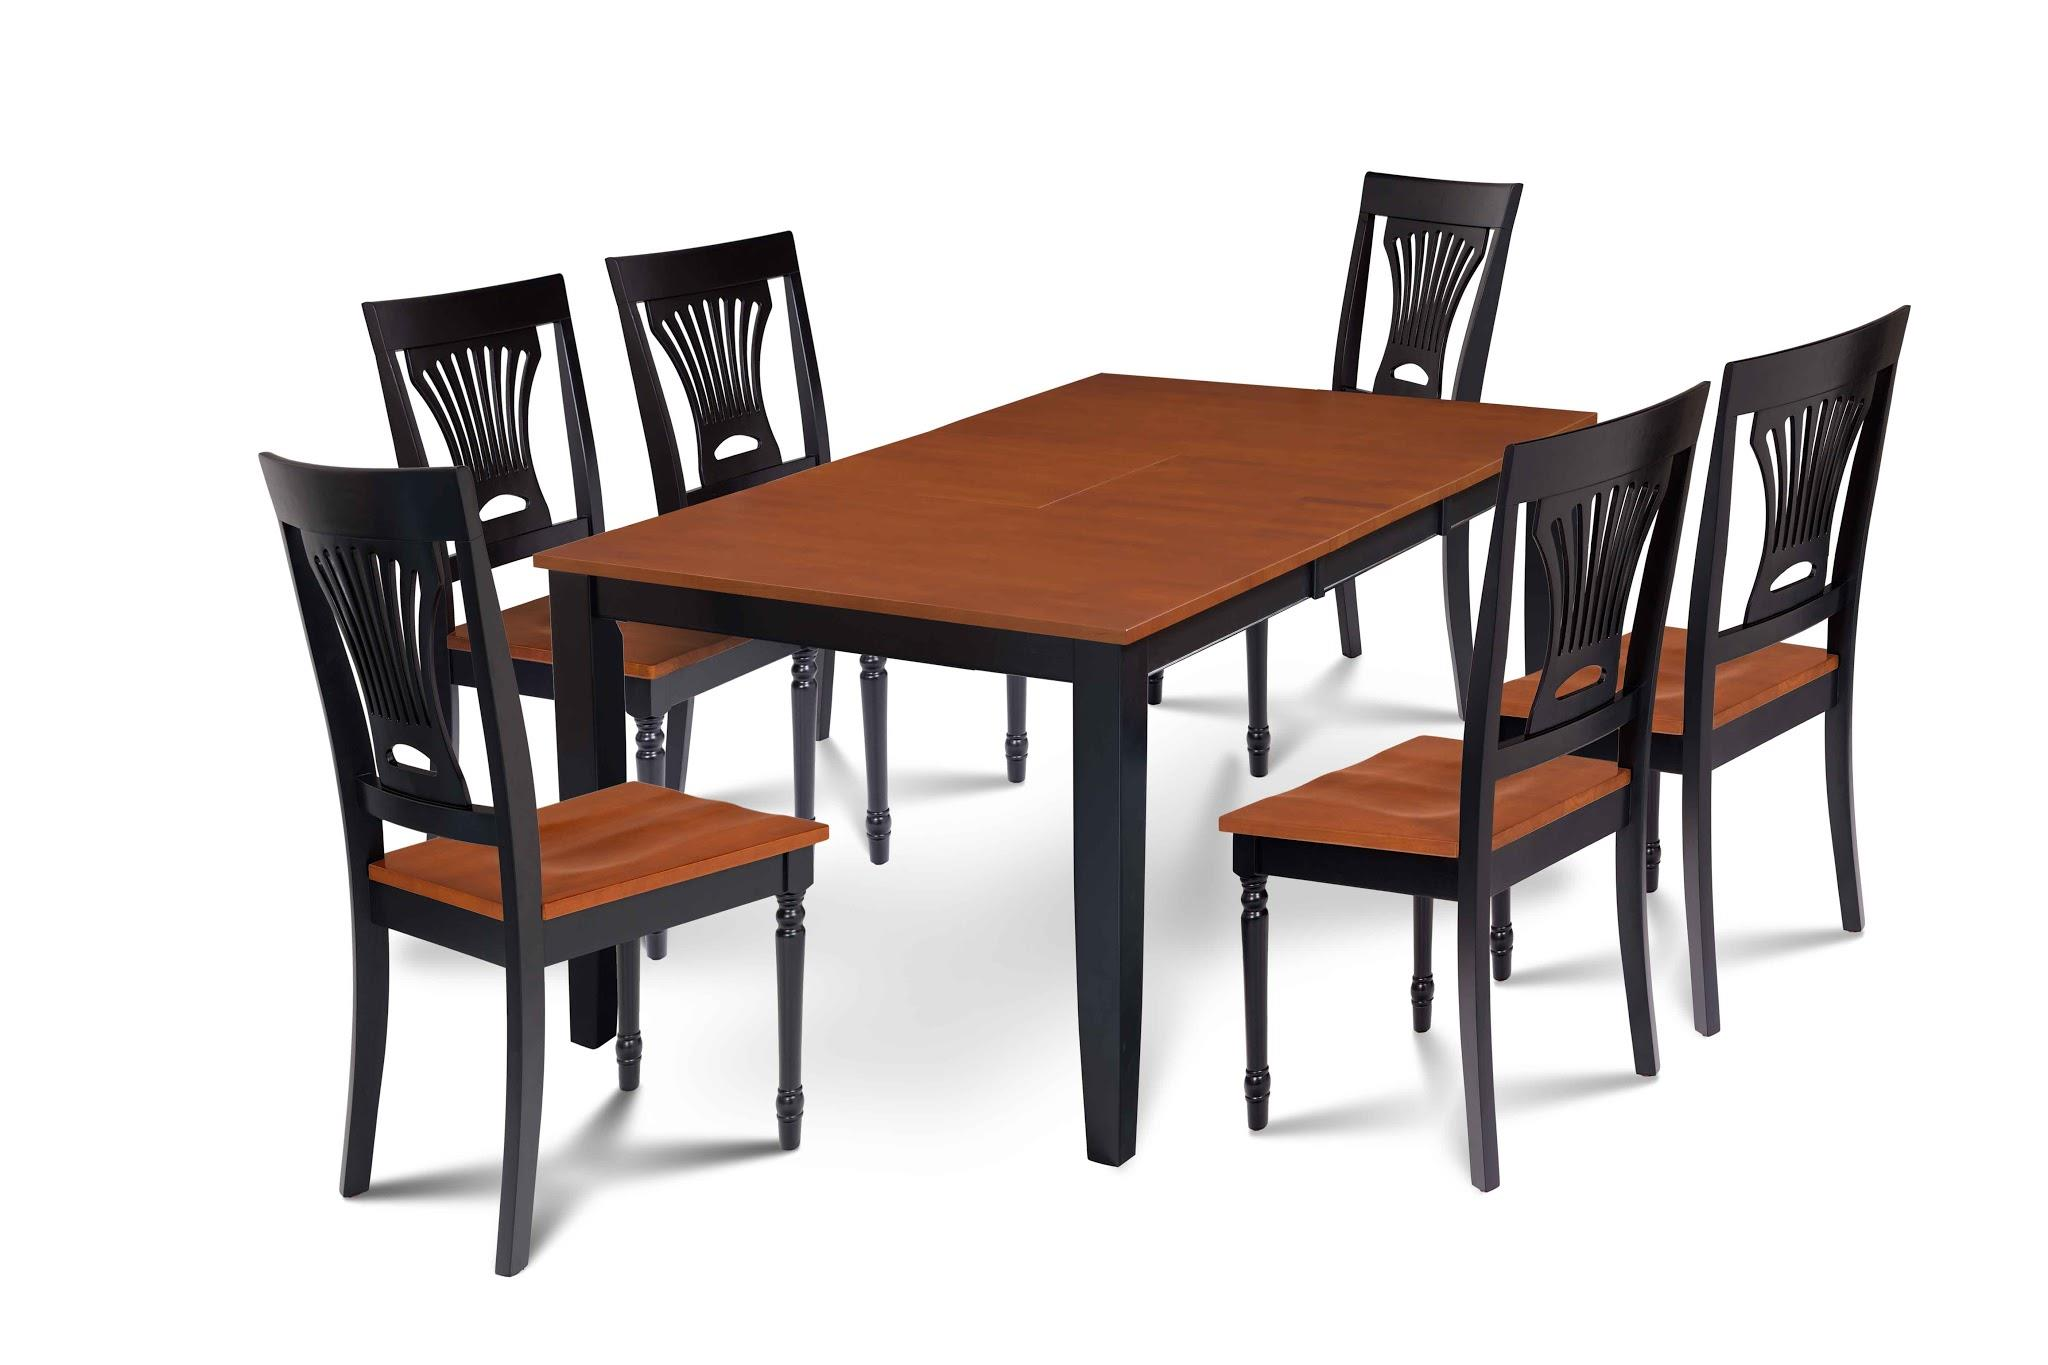 7 Piece Dining Room Set Table With A Butterfly Leaf And 6 Dining Chairs-Finish:Black Cherry,Shape:Rectangular by M&D Furniture